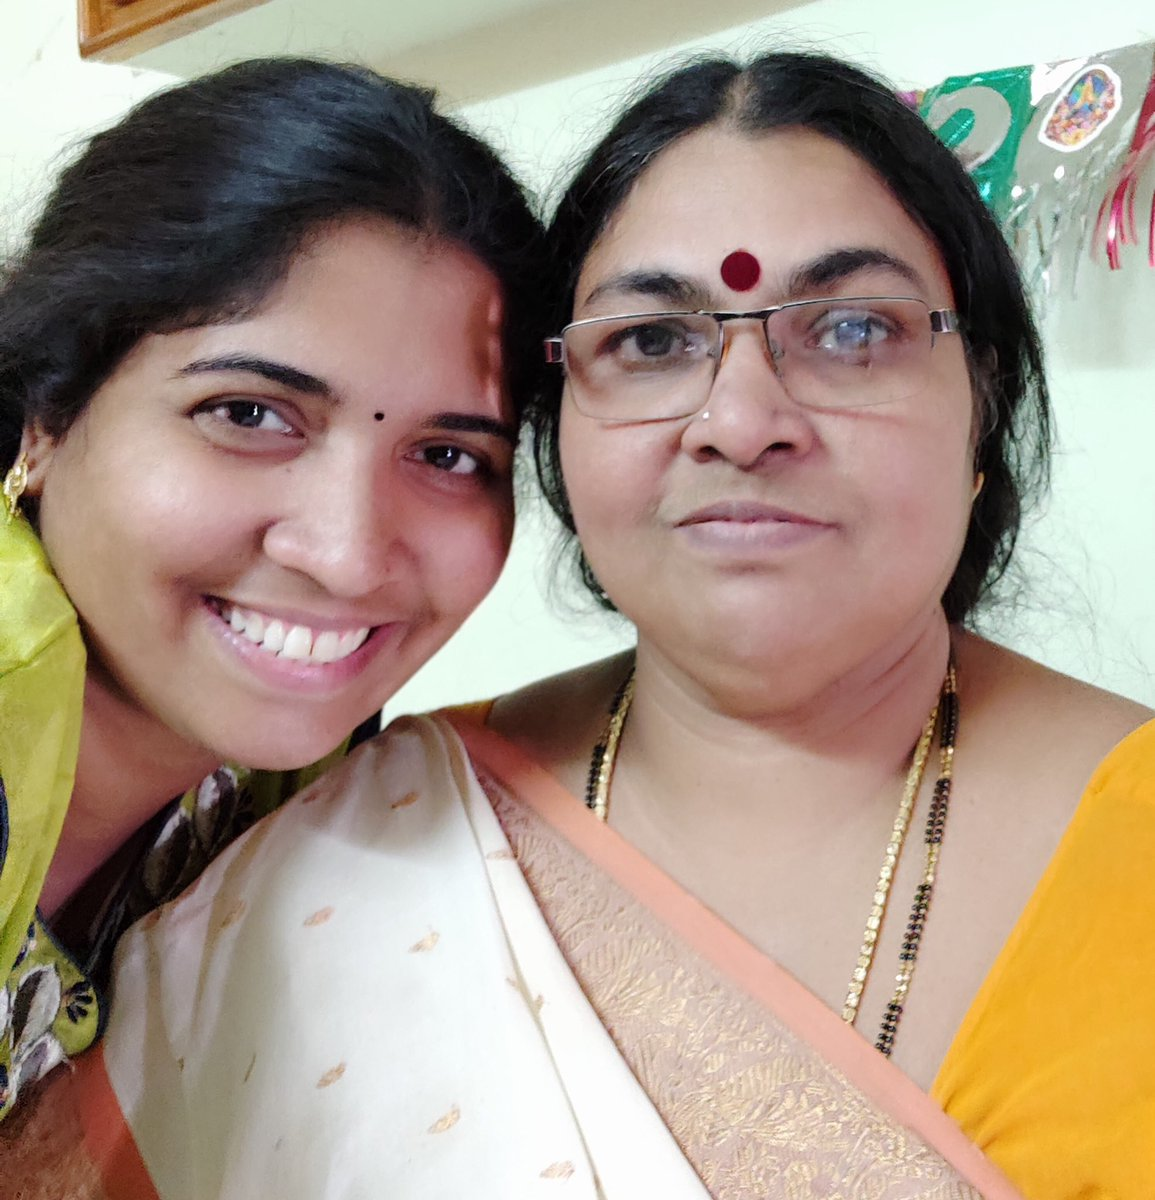 @AugmontGold #MyMotherLikeNoOther She has a sweet smile that makes me fall in love with her everyday. Shes My Distress Friend&a born magician who vanishes all my worries With her warm hug🤗Her presence makes me feel secured,her voice soothes me&I feel blessed to have a Mom who Lovs me NonStop https://t.co/rsyhnj9oPX